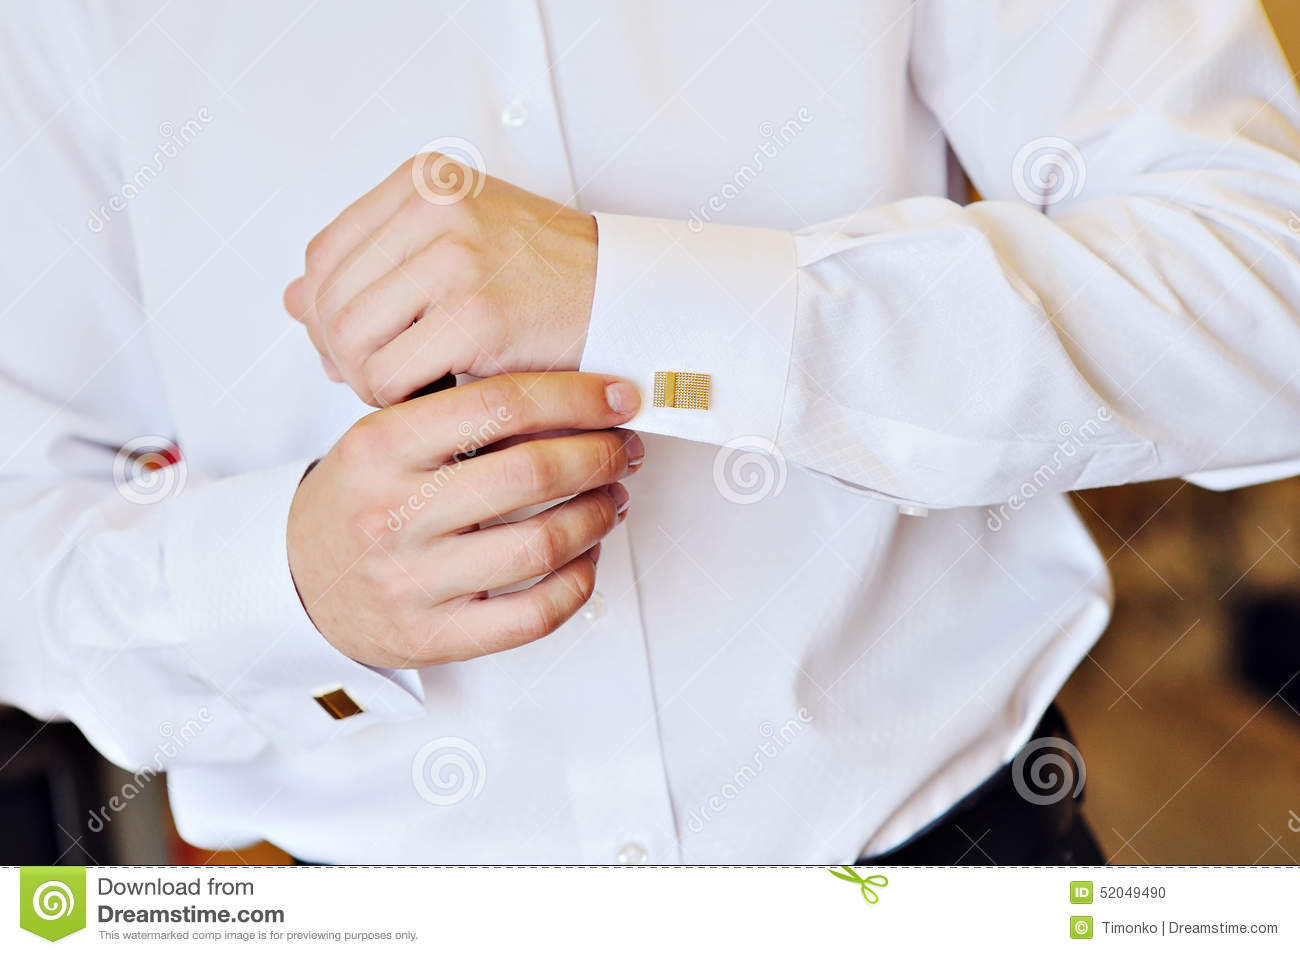 Man In A White Shirt Dress Cufflinks Stock Photo - Image: 52049490